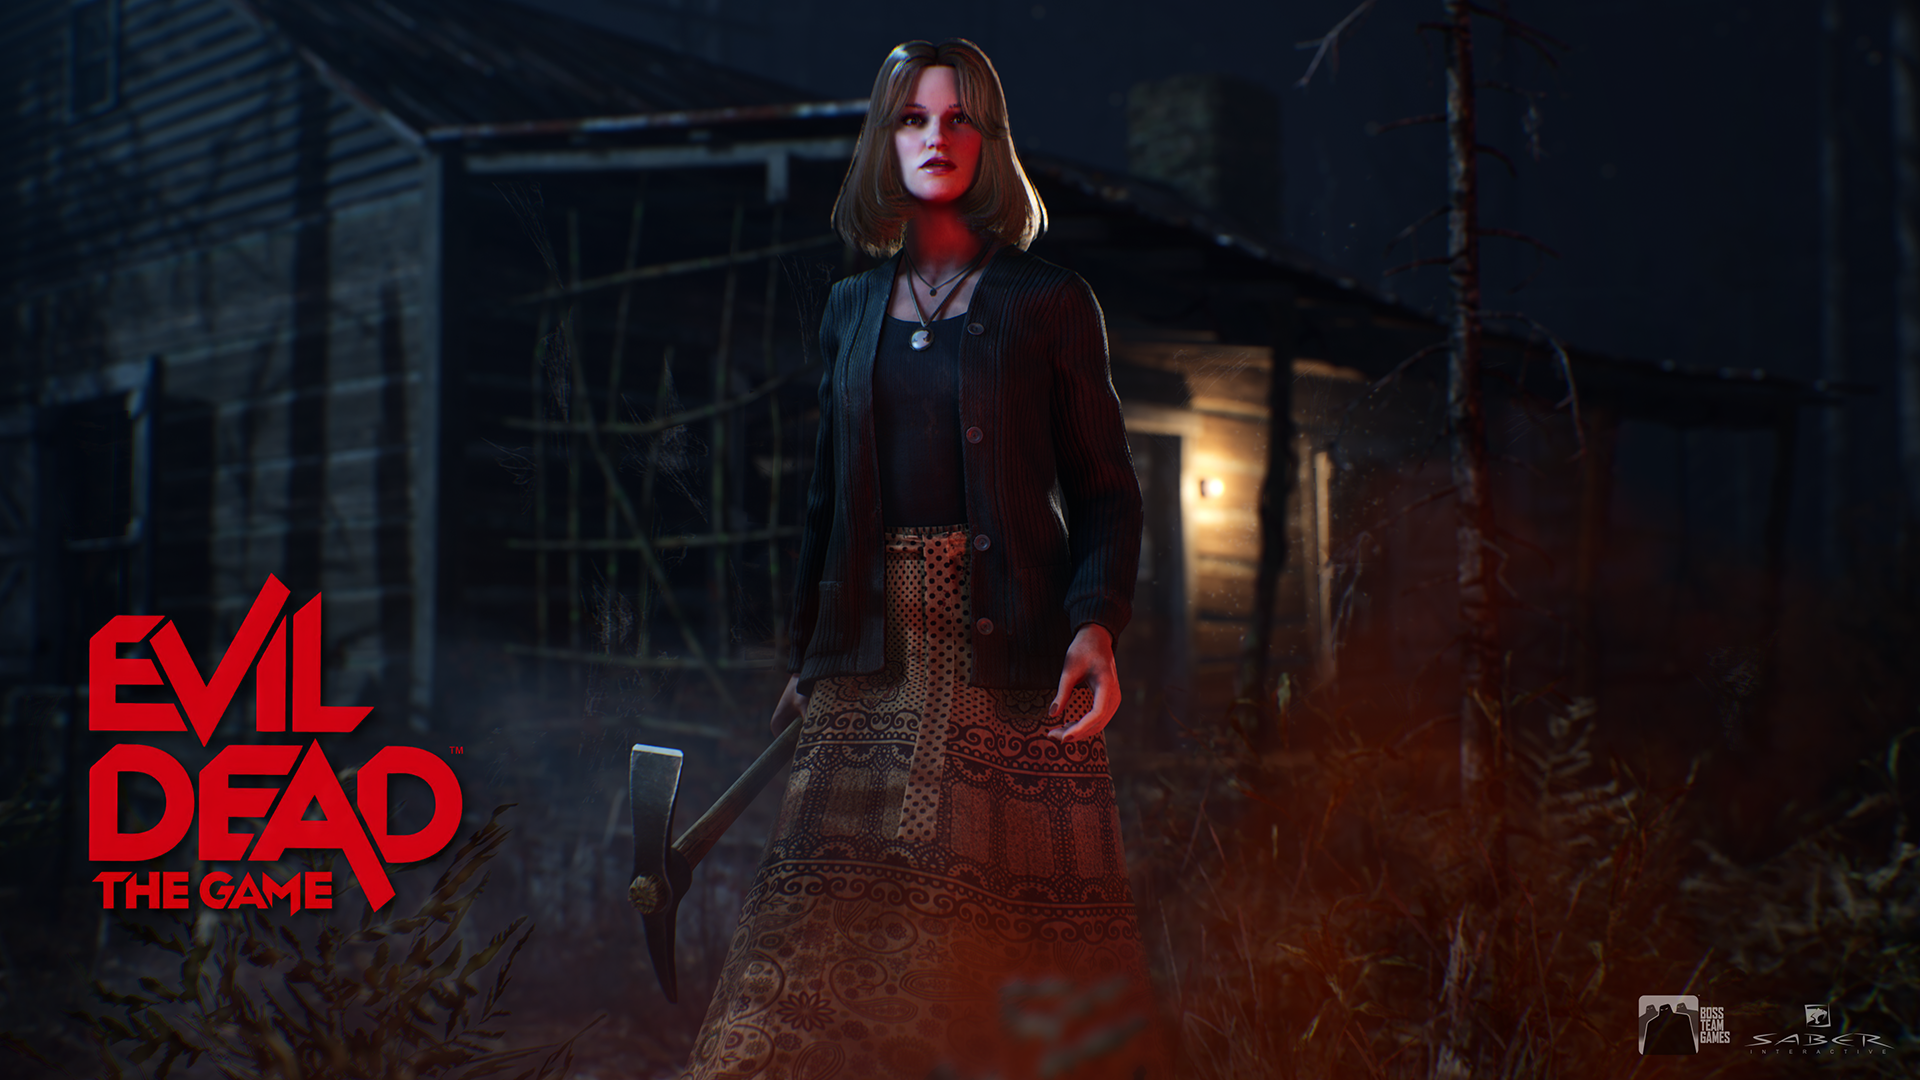 Evil Dead The Game 2021 06 10 21 002